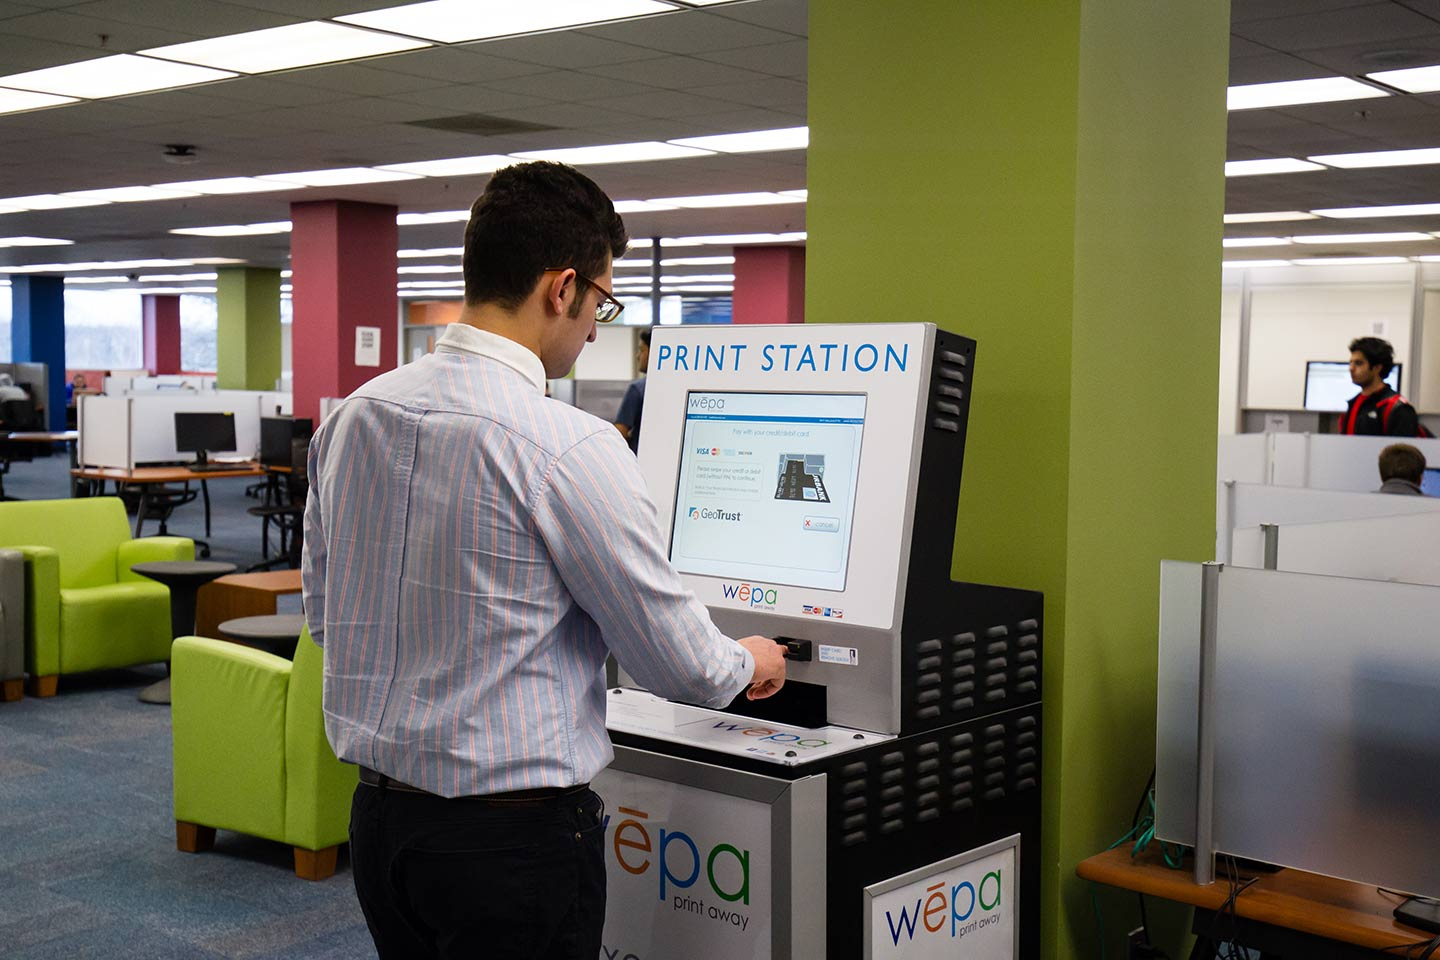 wepa print station in Kresge Library